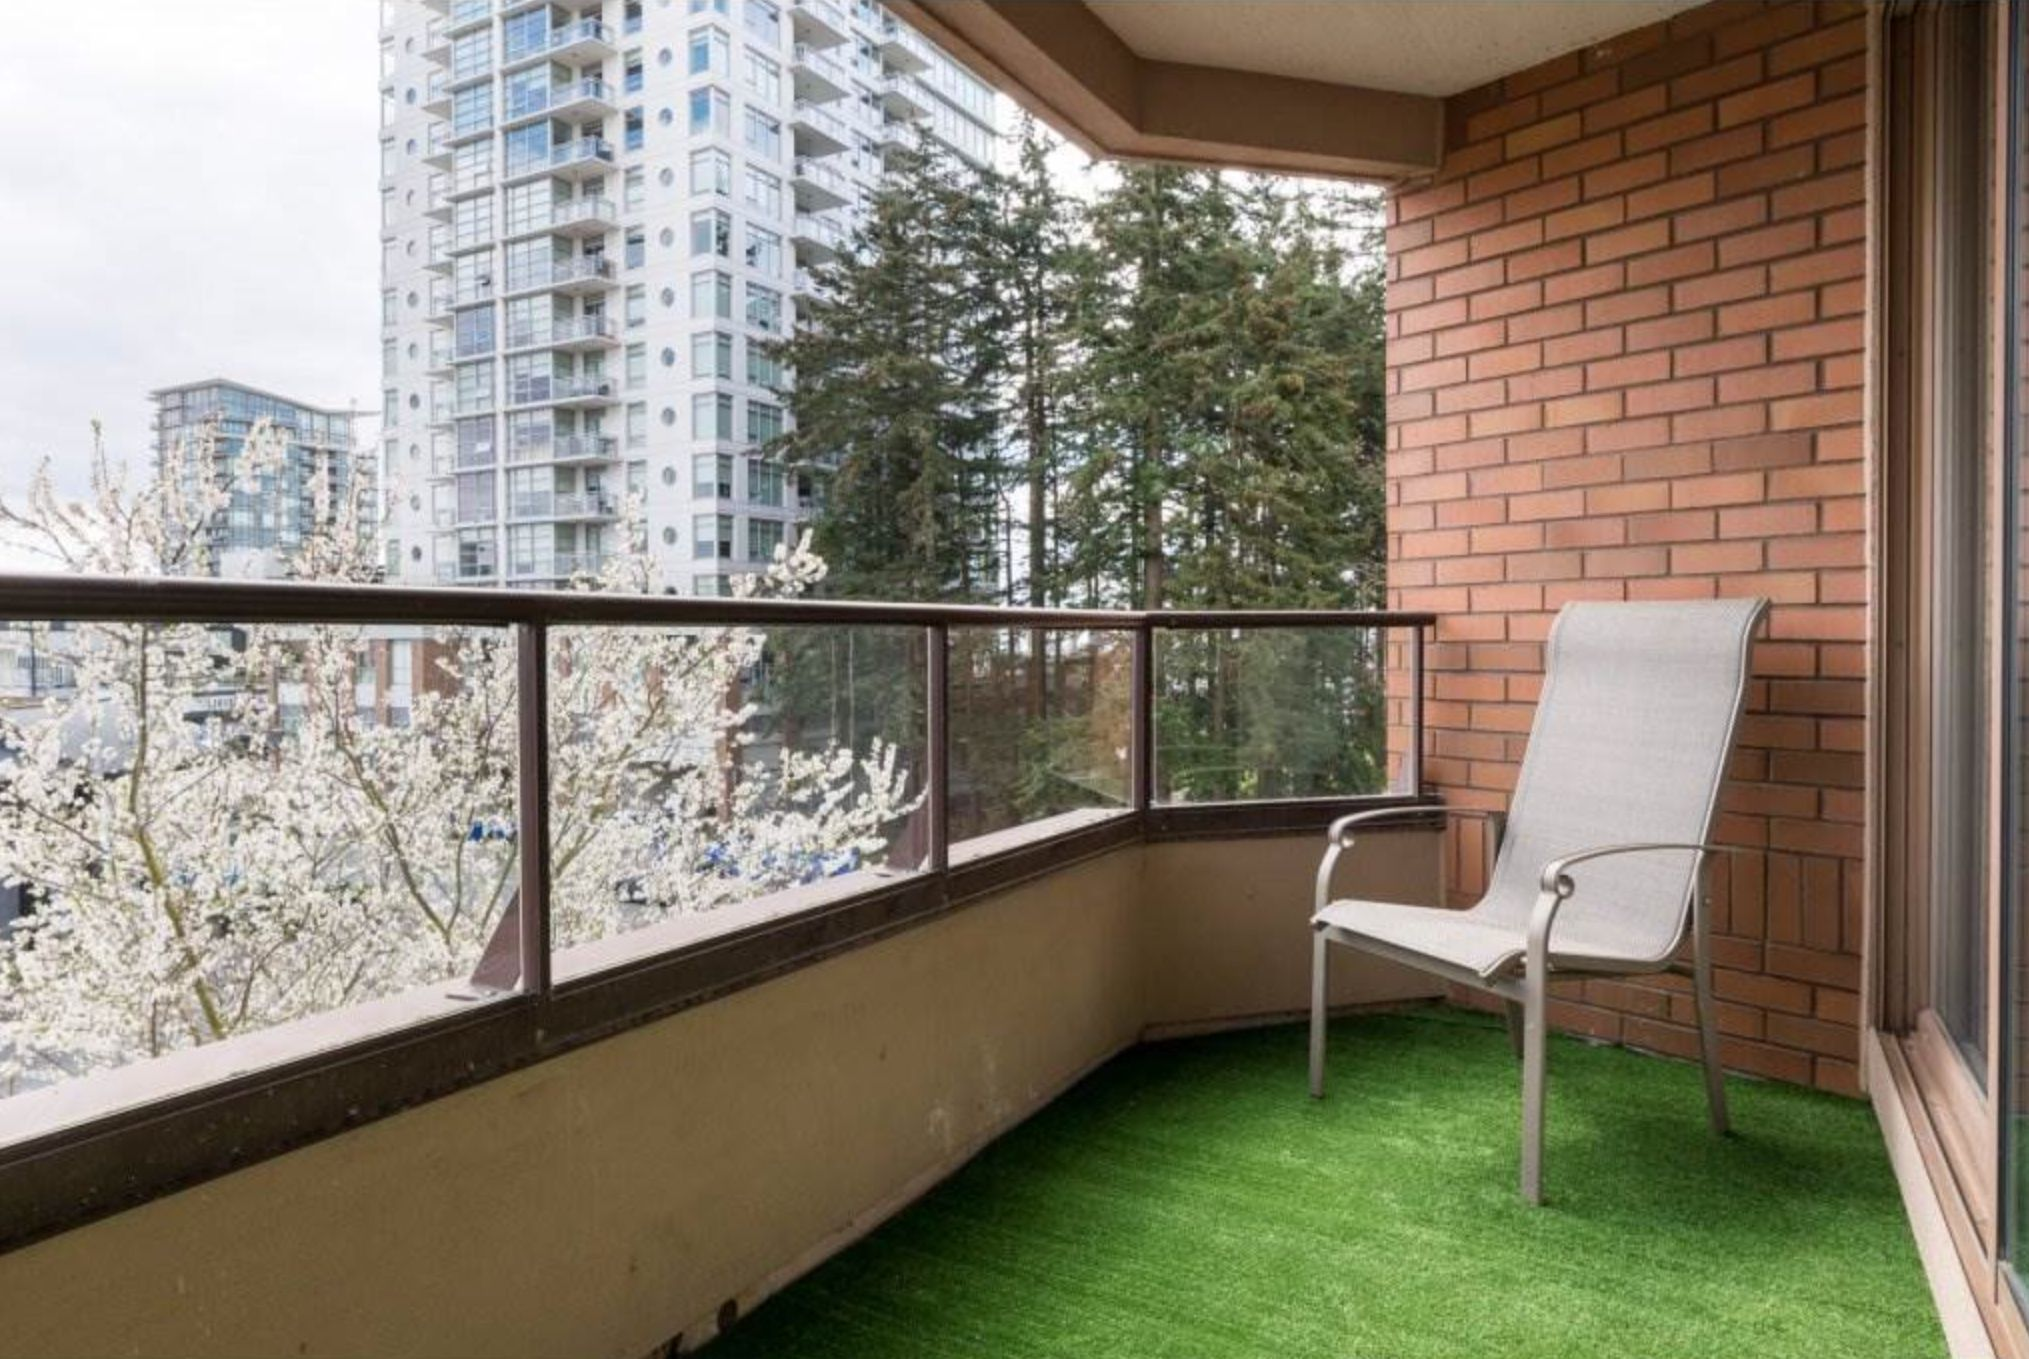 Photo 9: Photos: 410, 15111 Russell Avenue: White Rock Condo for sale (South Surrey White Rock)  : MLS®# R2152299